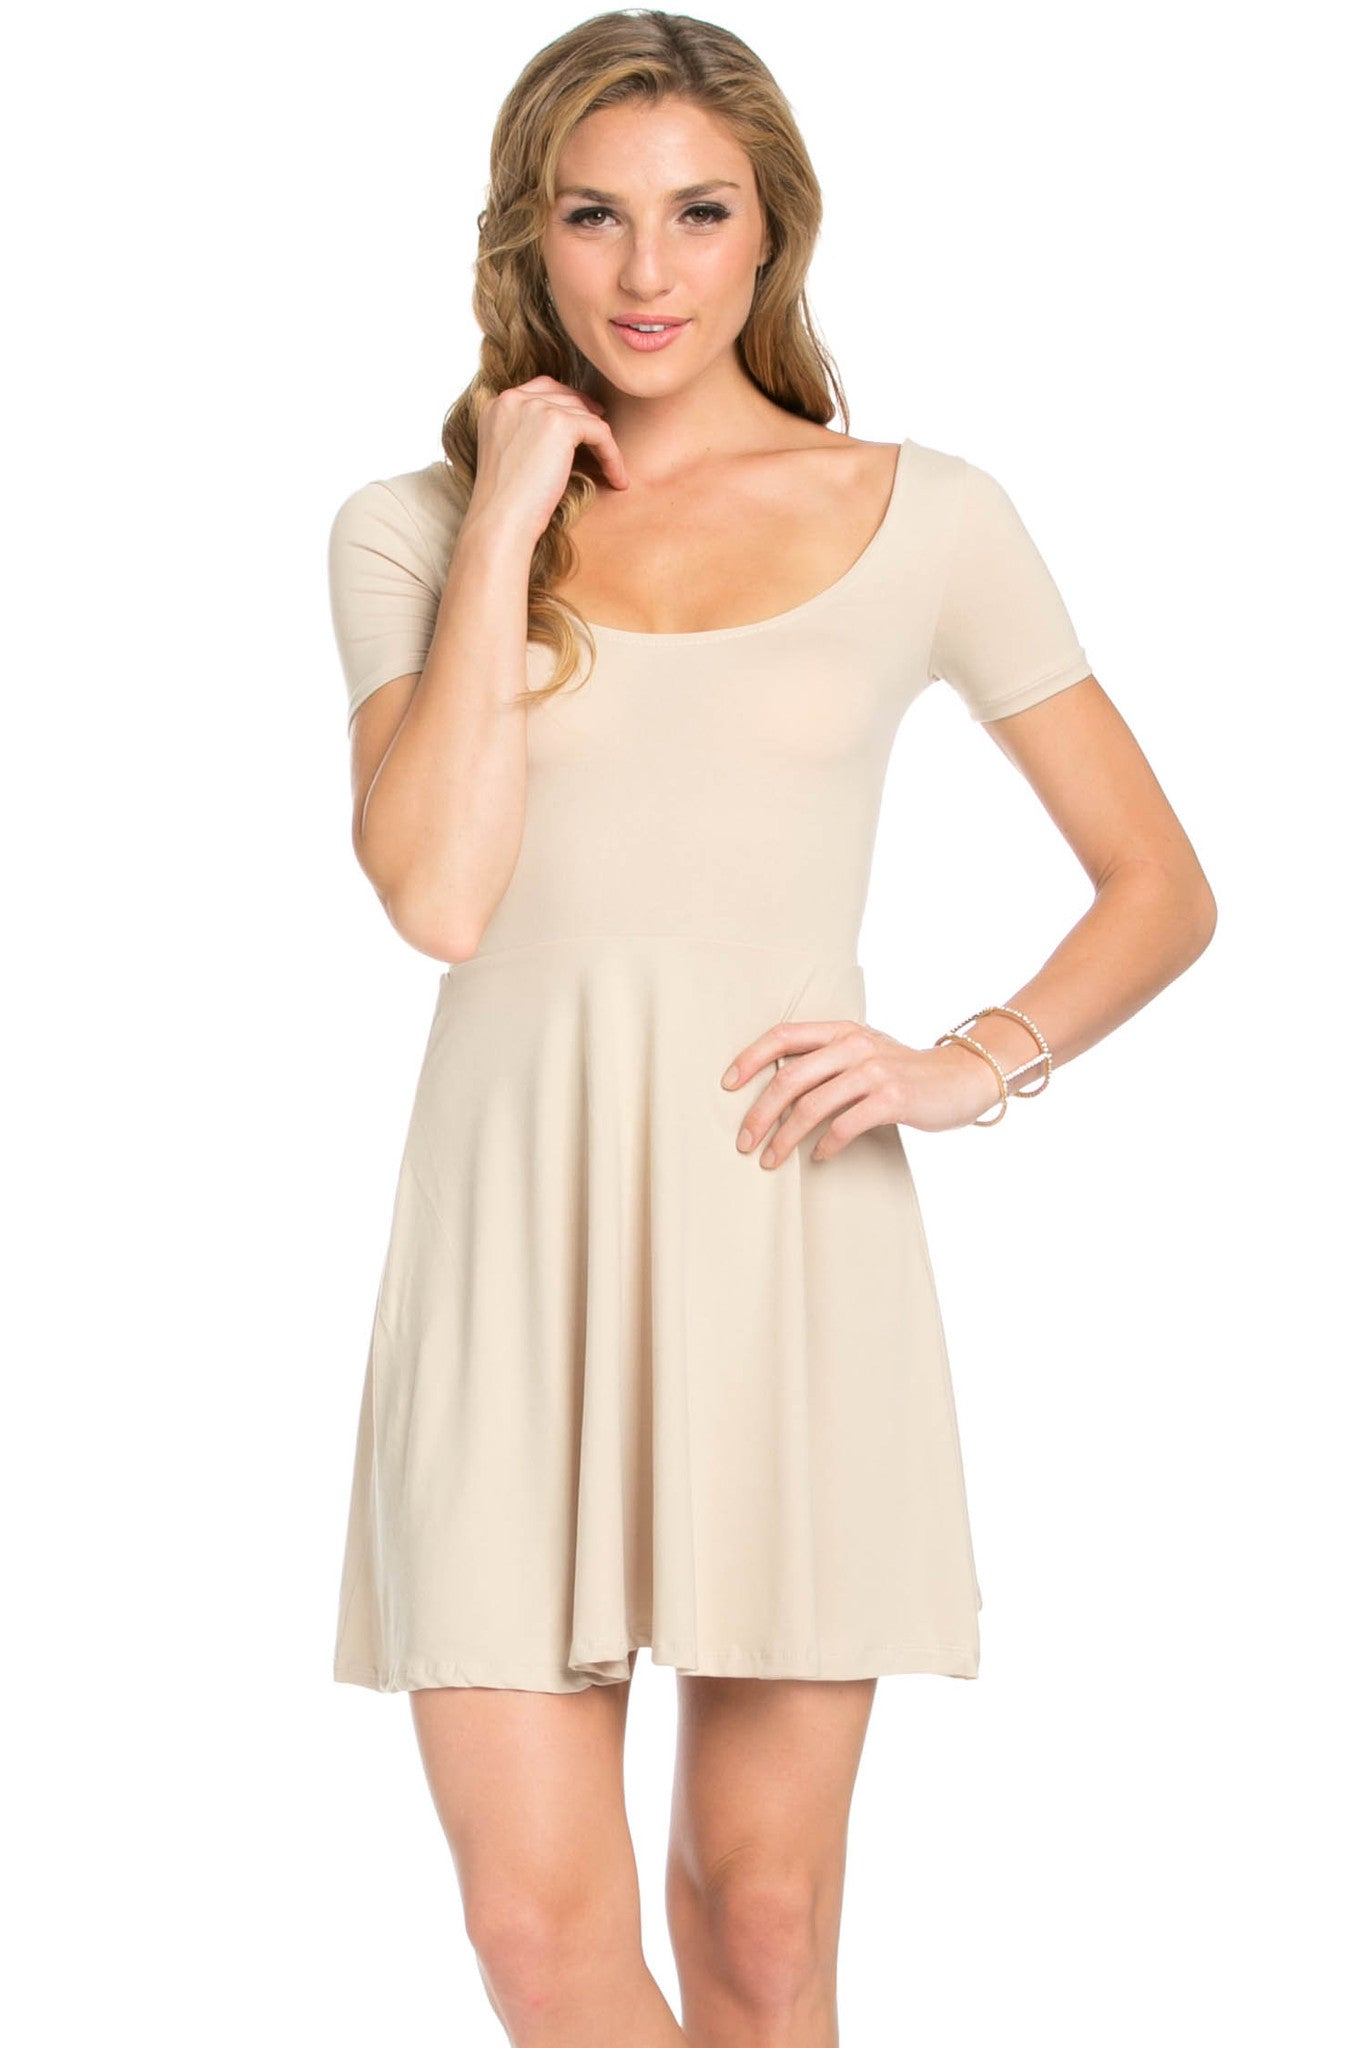 Micro Suede Khaki Mini Dress - Dresses - My Yuccie - 4